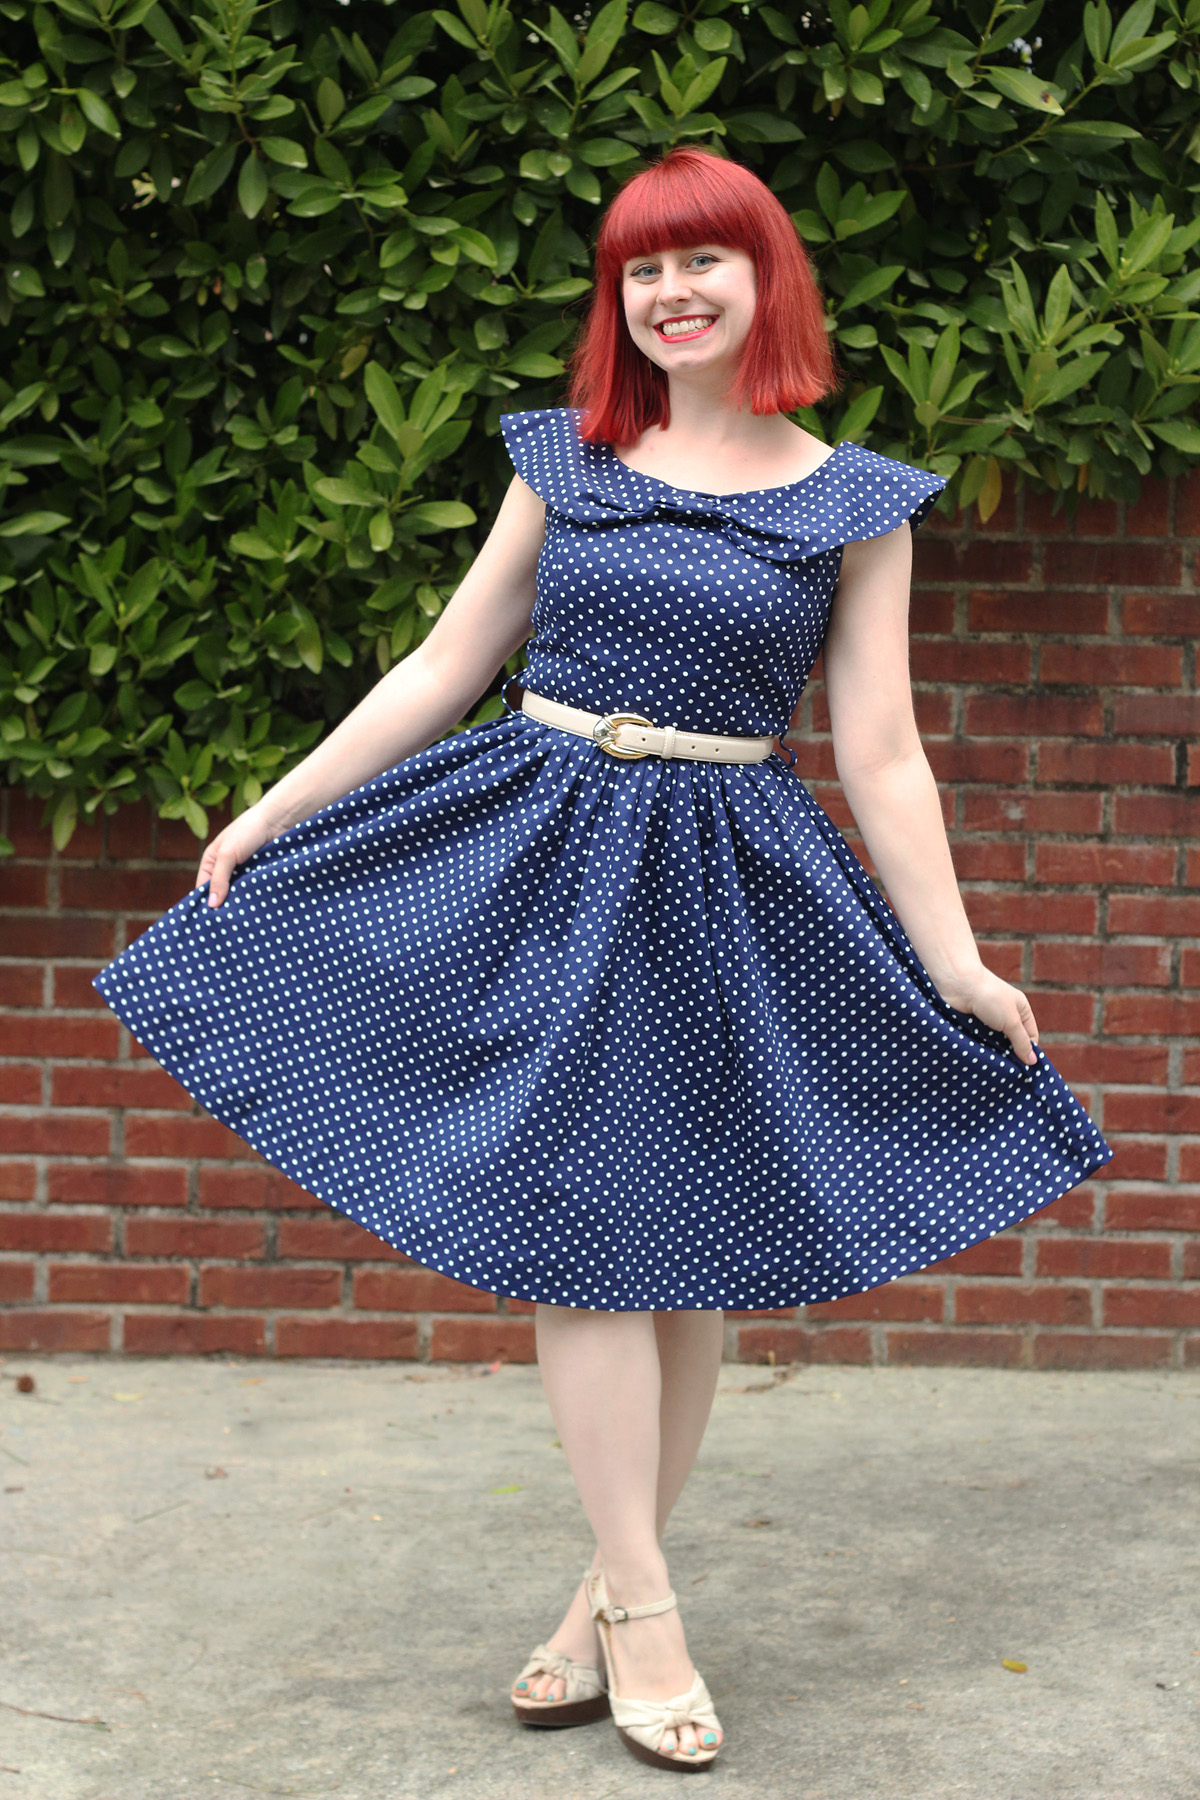 Lindy Bop Hetty Dress in Navy Blue Polka Dots, Off White Belt, and Peep Toe Heels